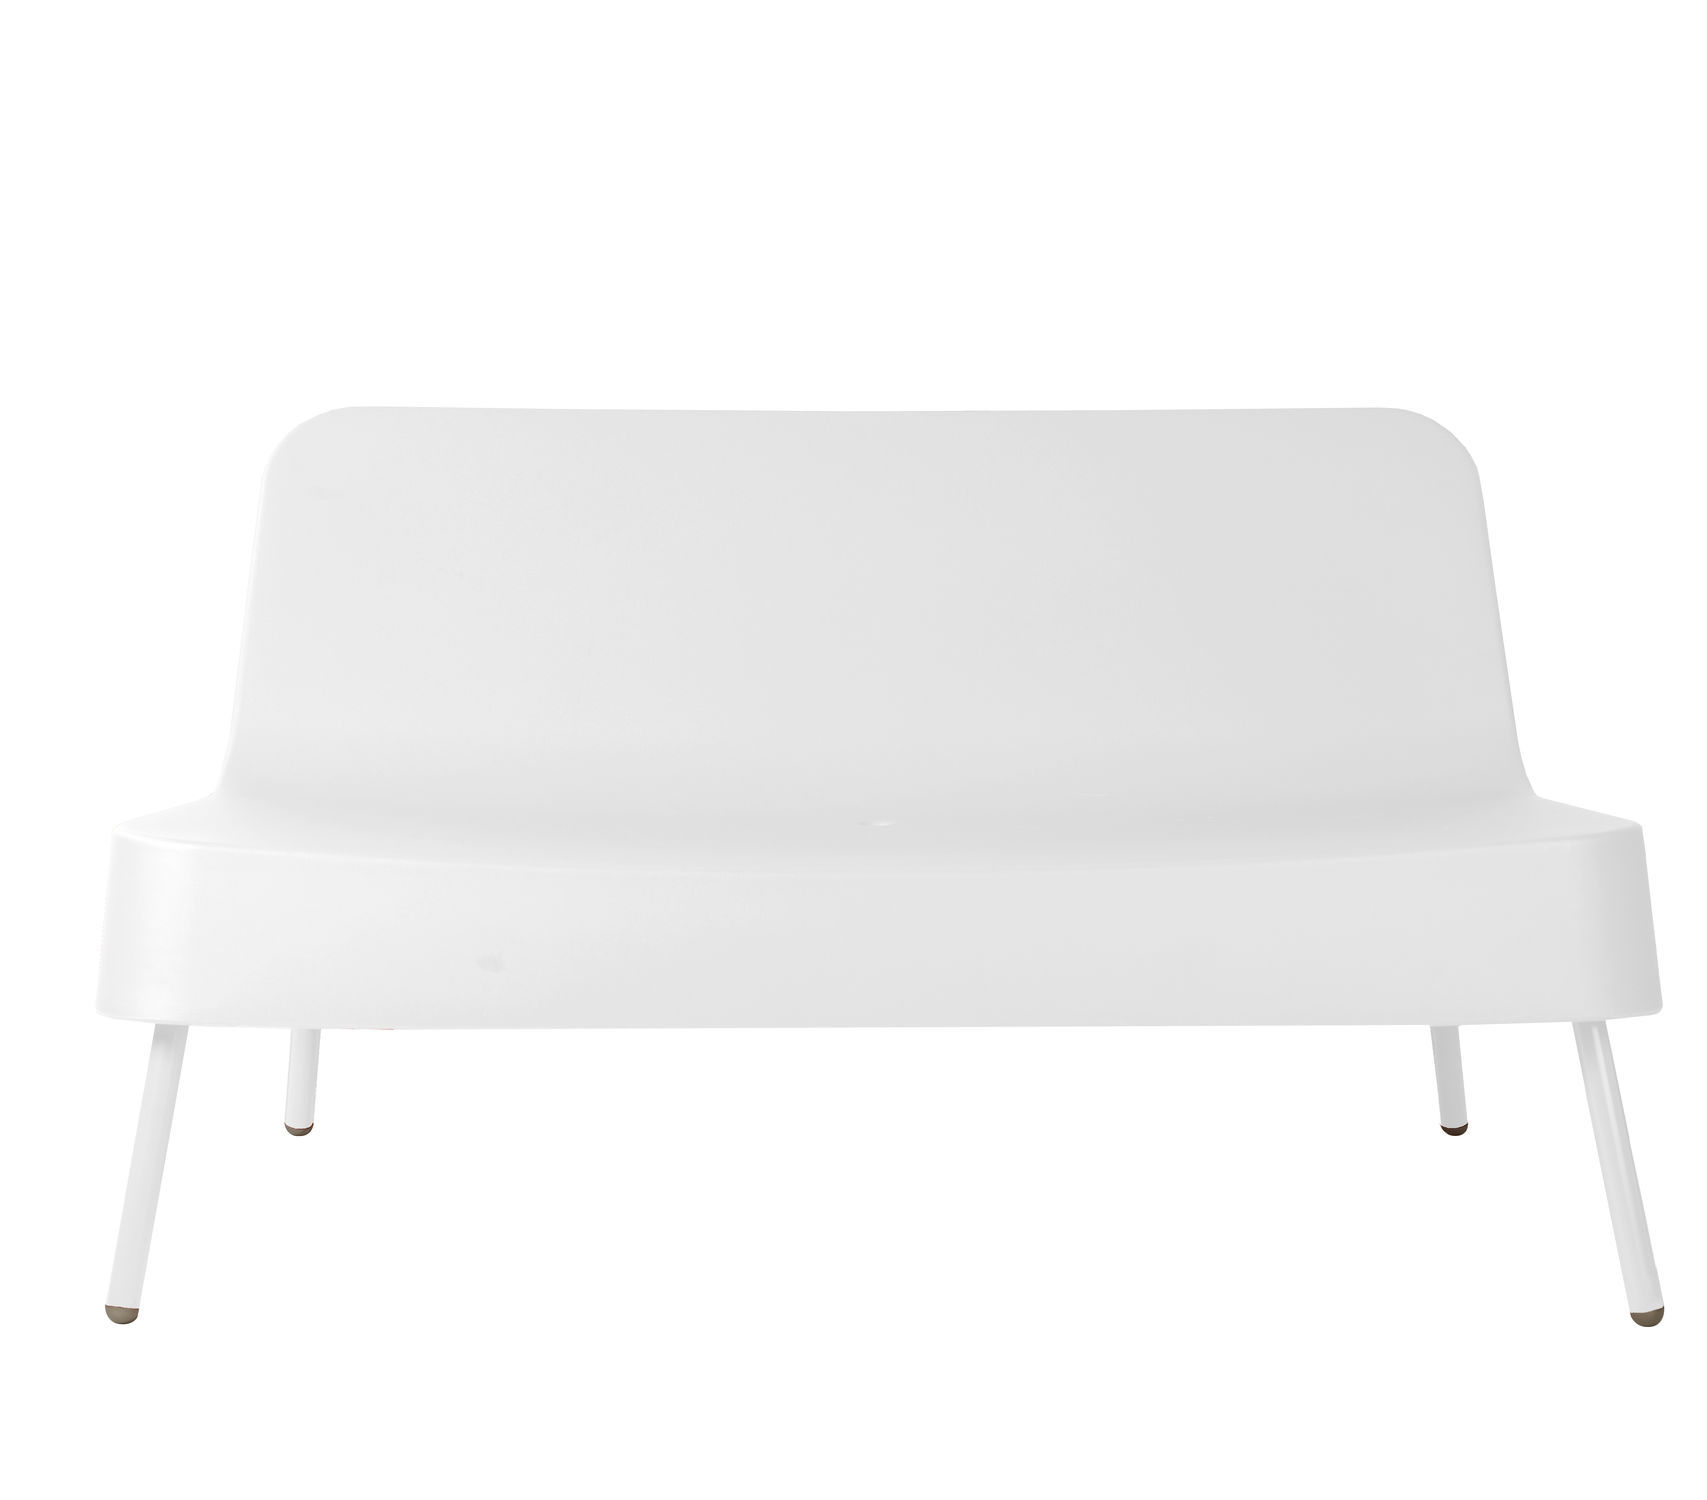 contemporary sofa garden polyethylene seater bob by joan contemporary sofa garden polyethylene 2 seater bob by joan gaspar barcelona dd